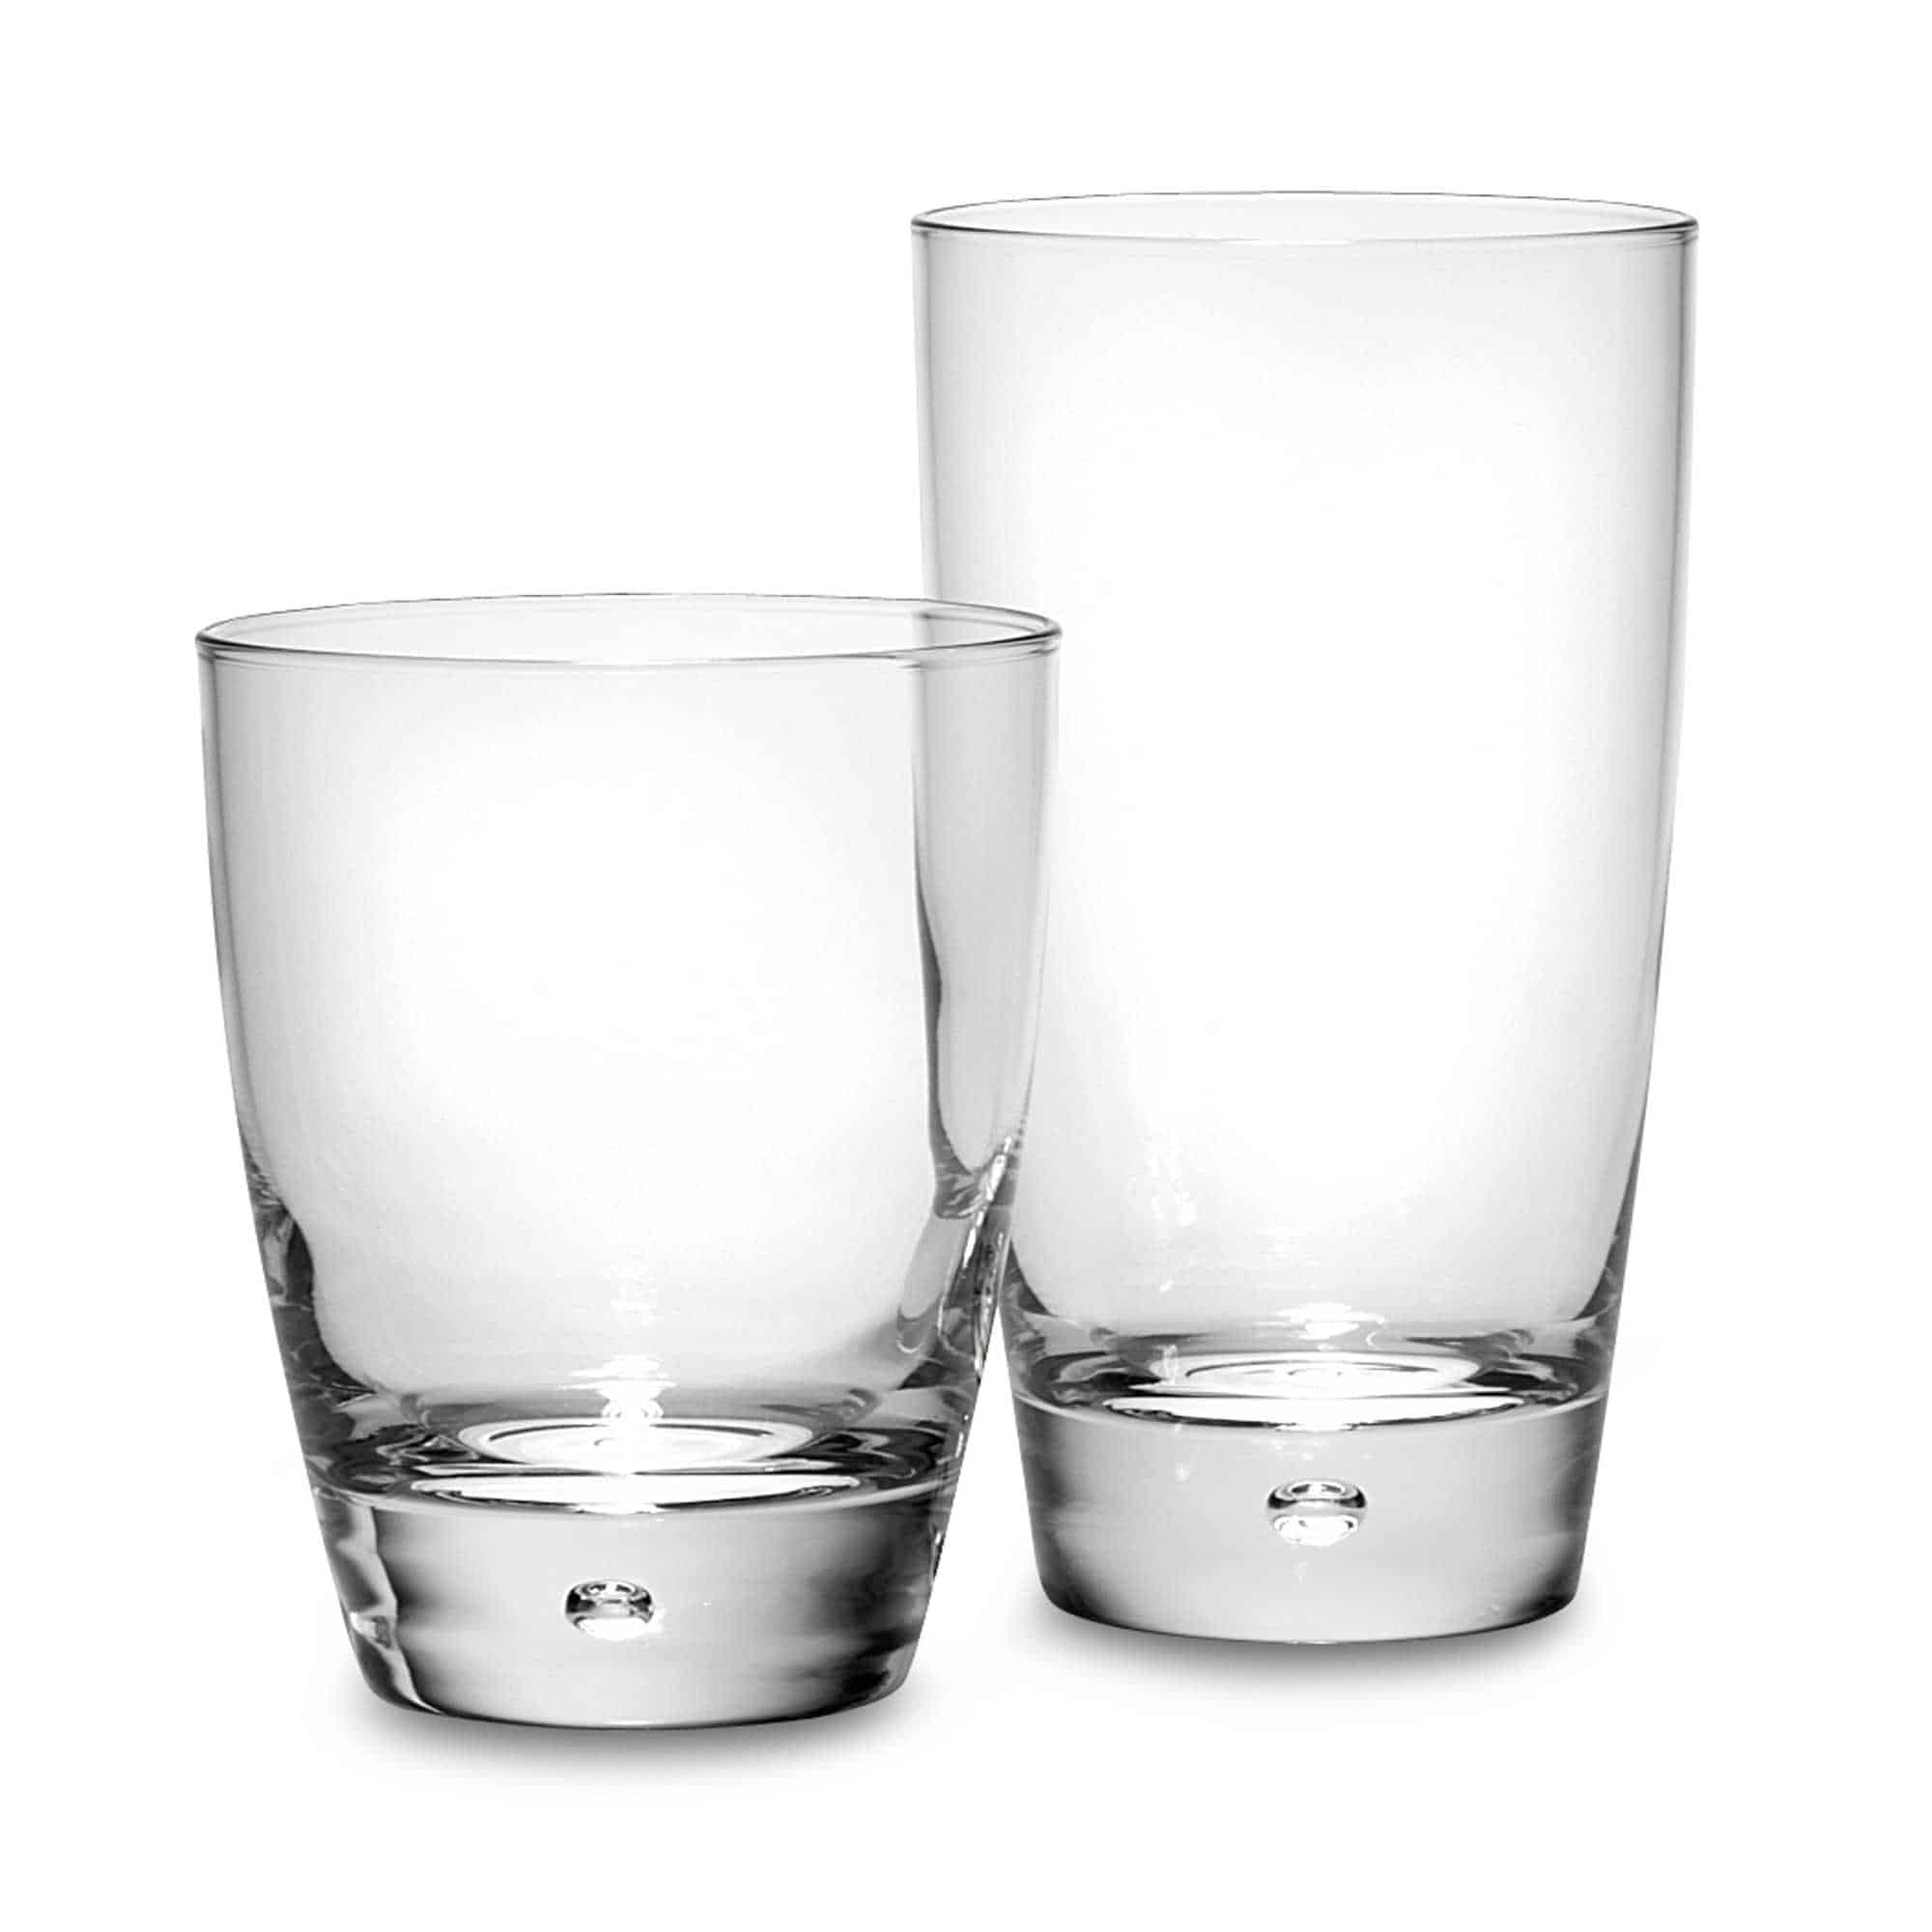 Contemporary dailyware with a bubble at the bottom design and dishwasher safe feature.